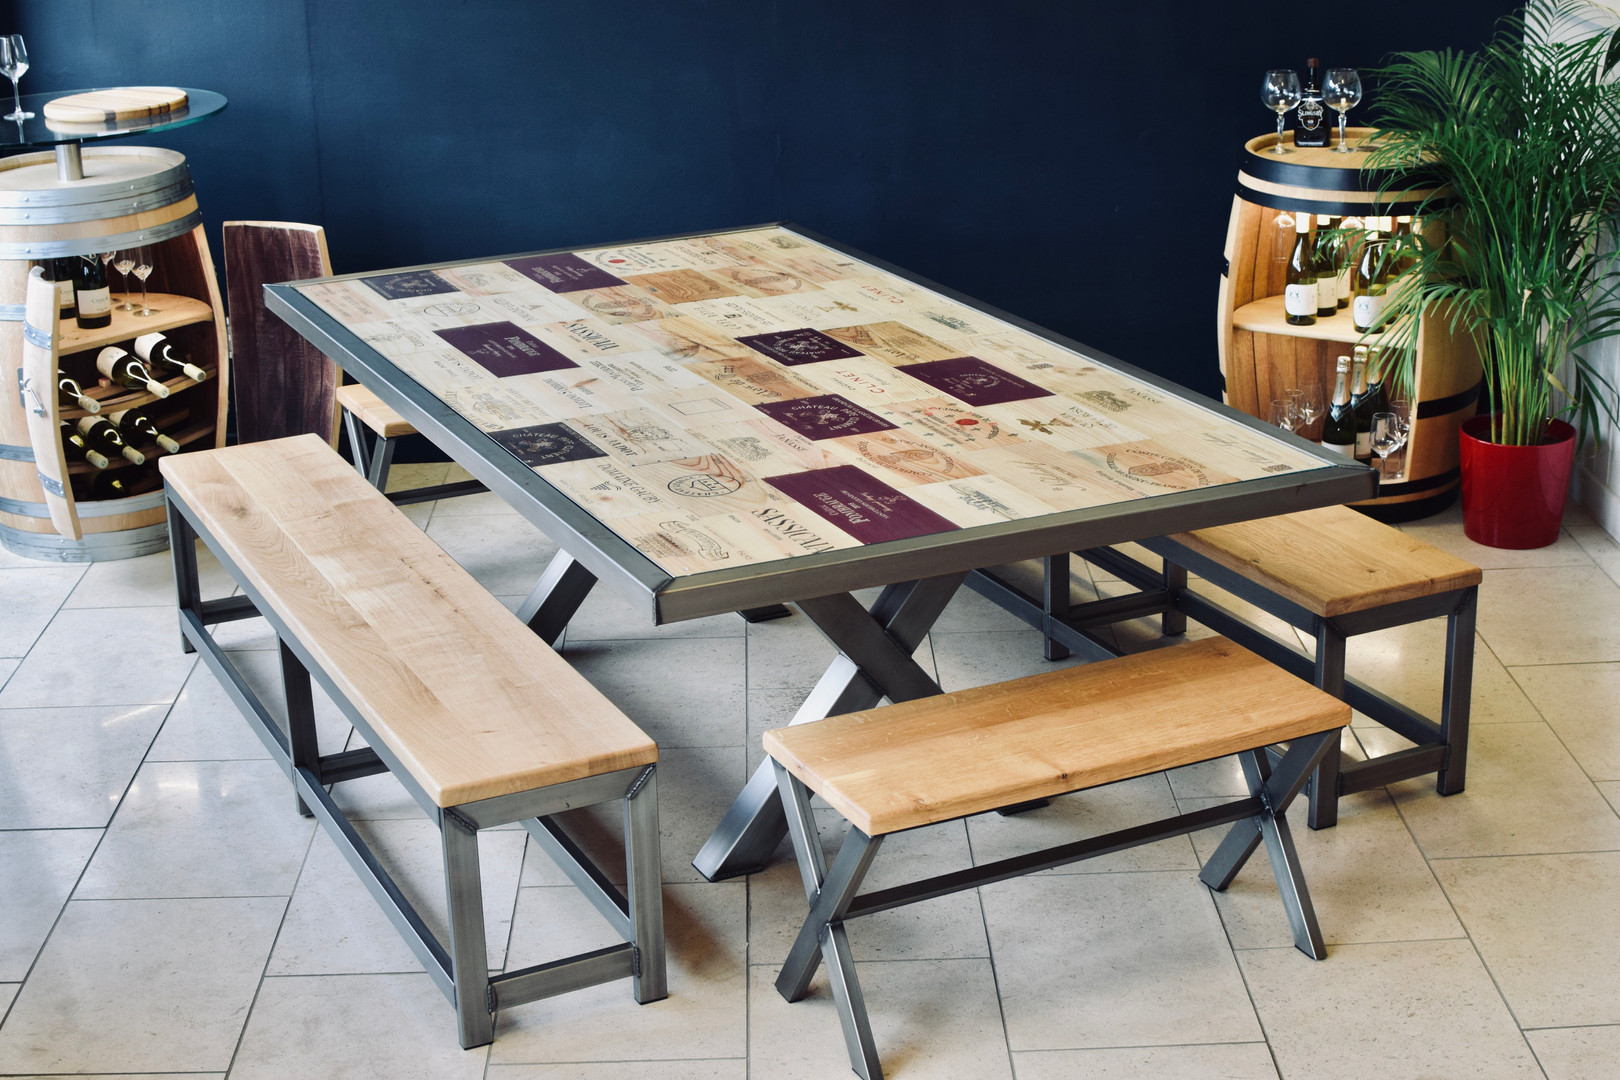 Acier dining table and benches